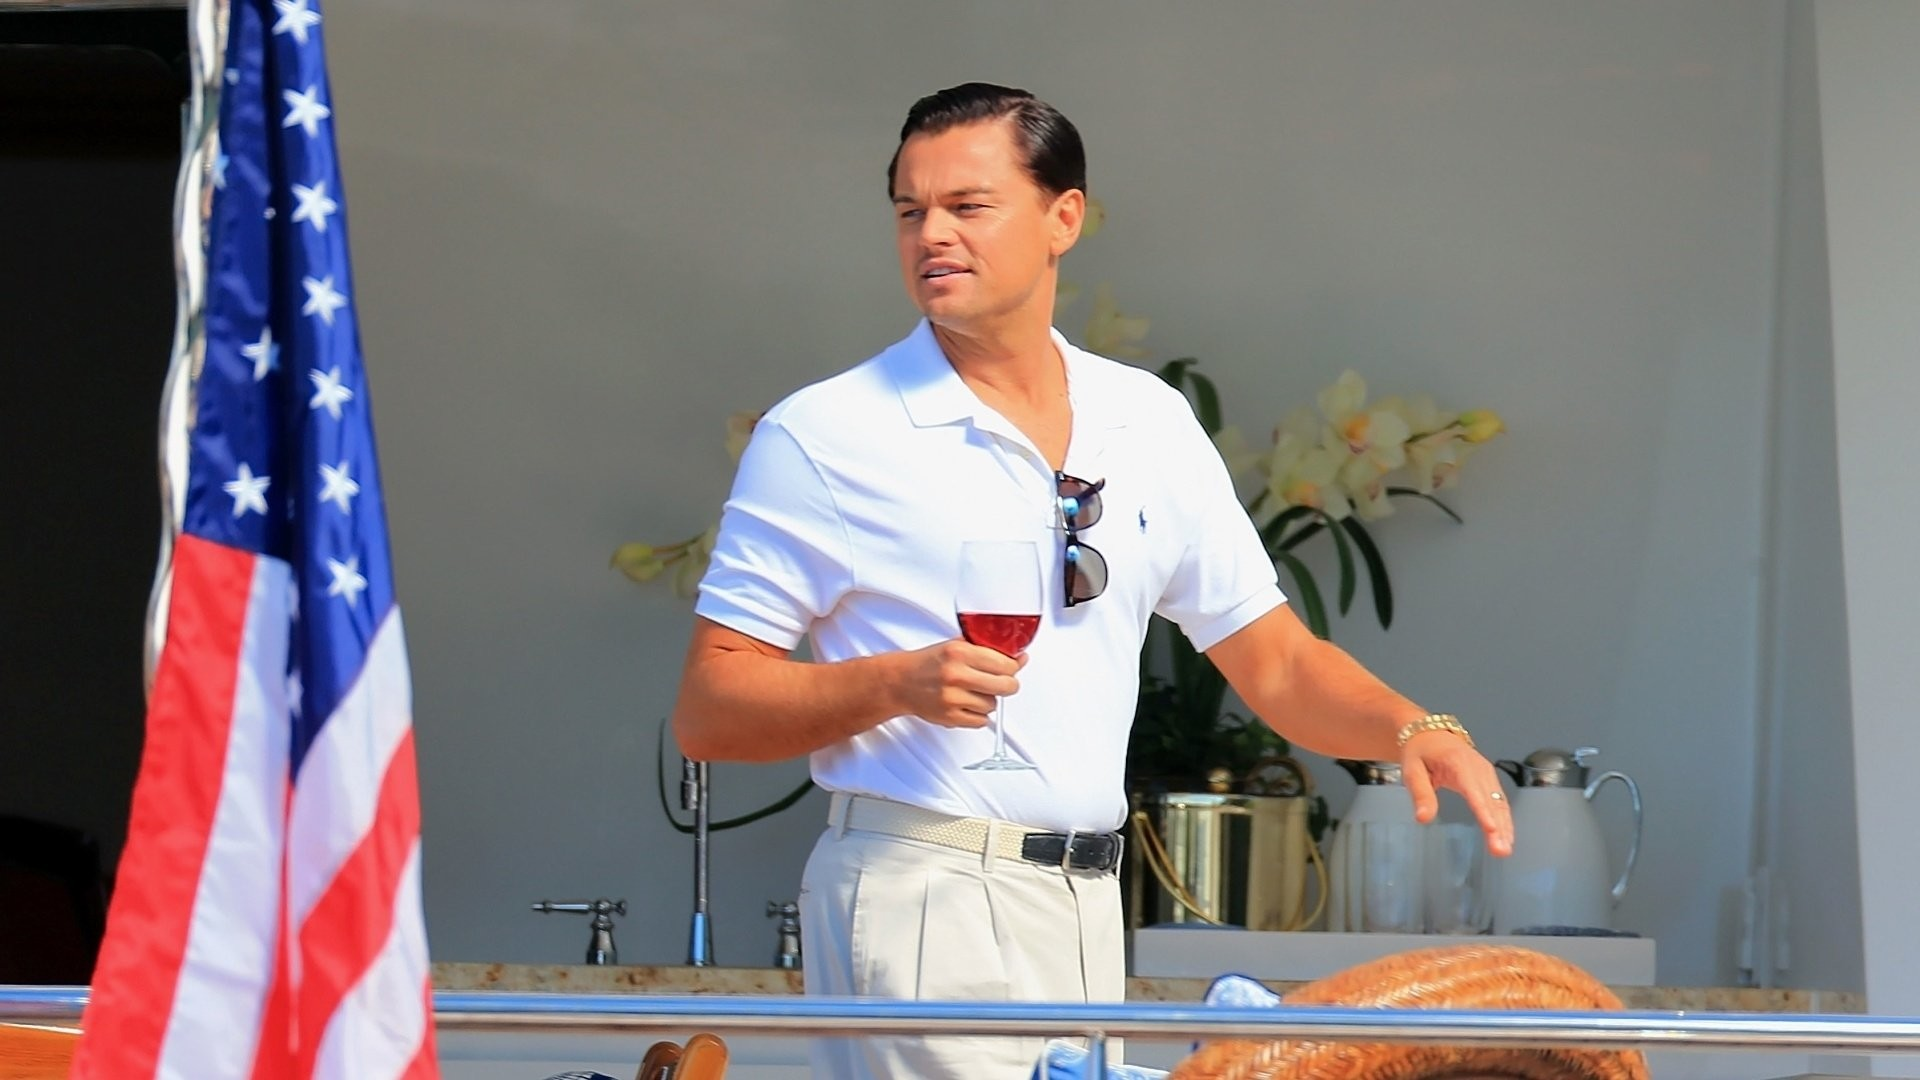 1920x1080 Movie - The Wolf of Wall Street Leonardo Dicaprio Jordan Belfort Wallpaper